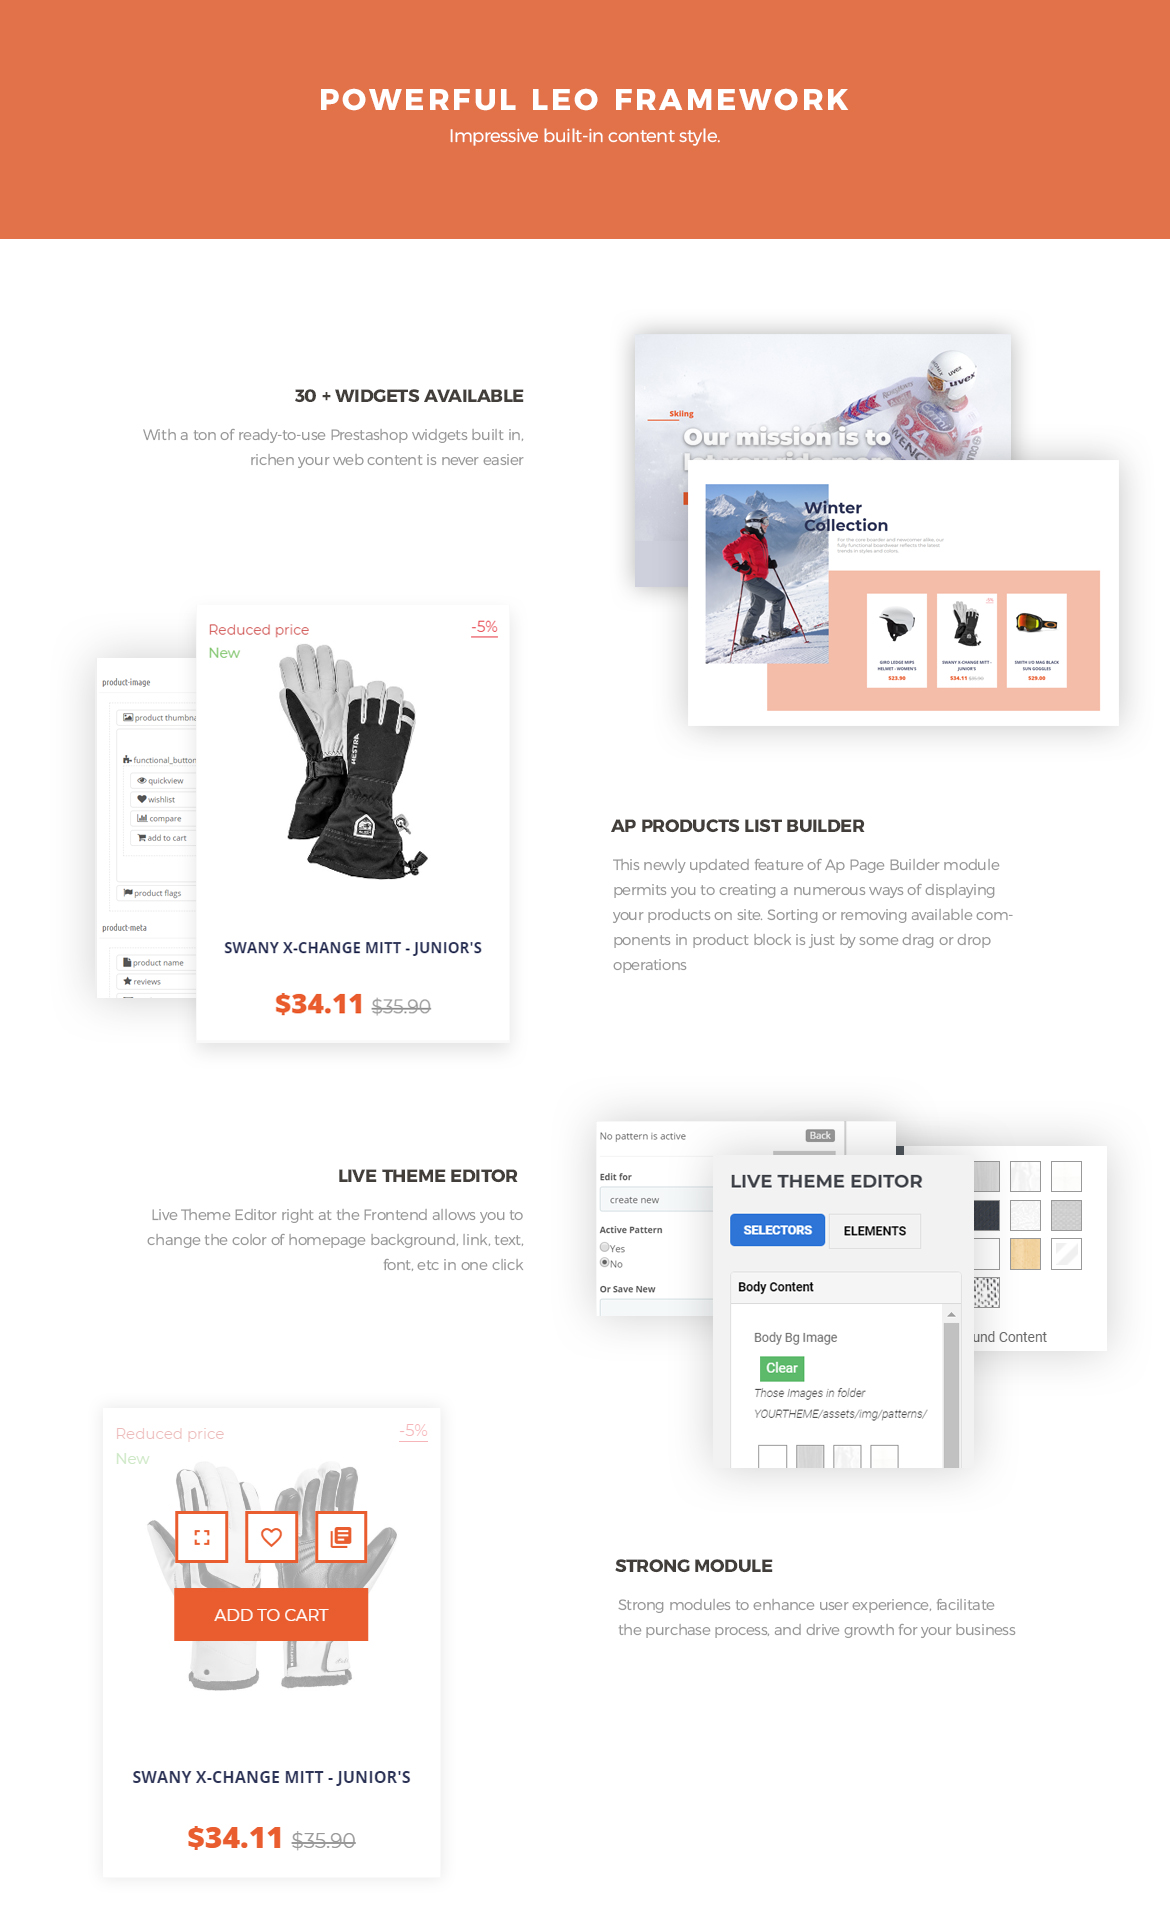 Leo Natur Sport Fashion Prestashop Theme - Powerful Leo Framwork